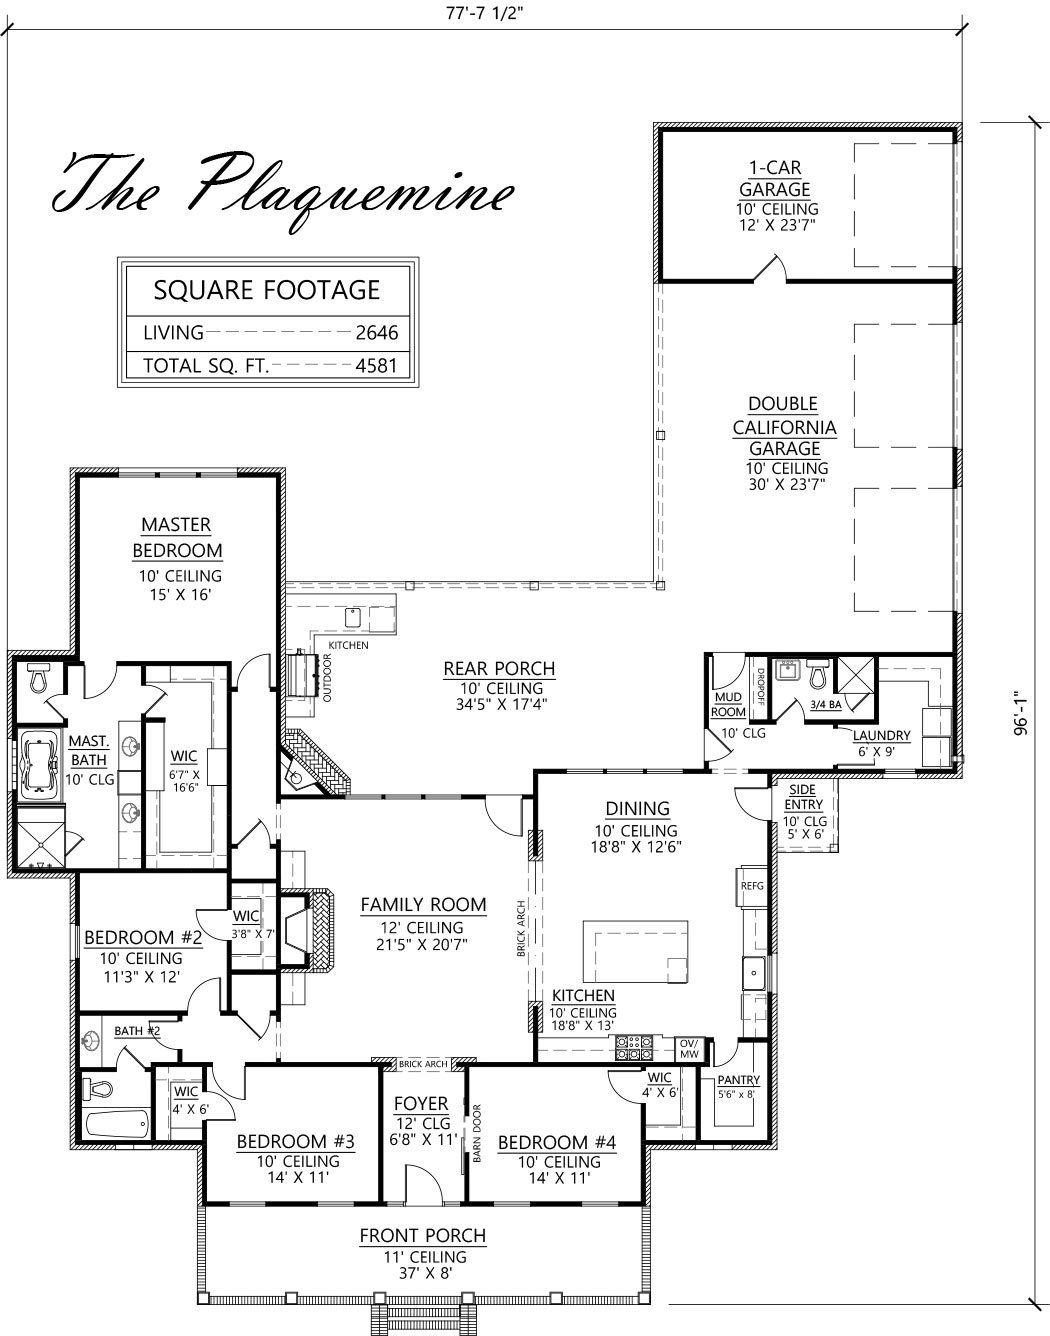 Acadian Style House Plan The Plaquemine Madden Home Design